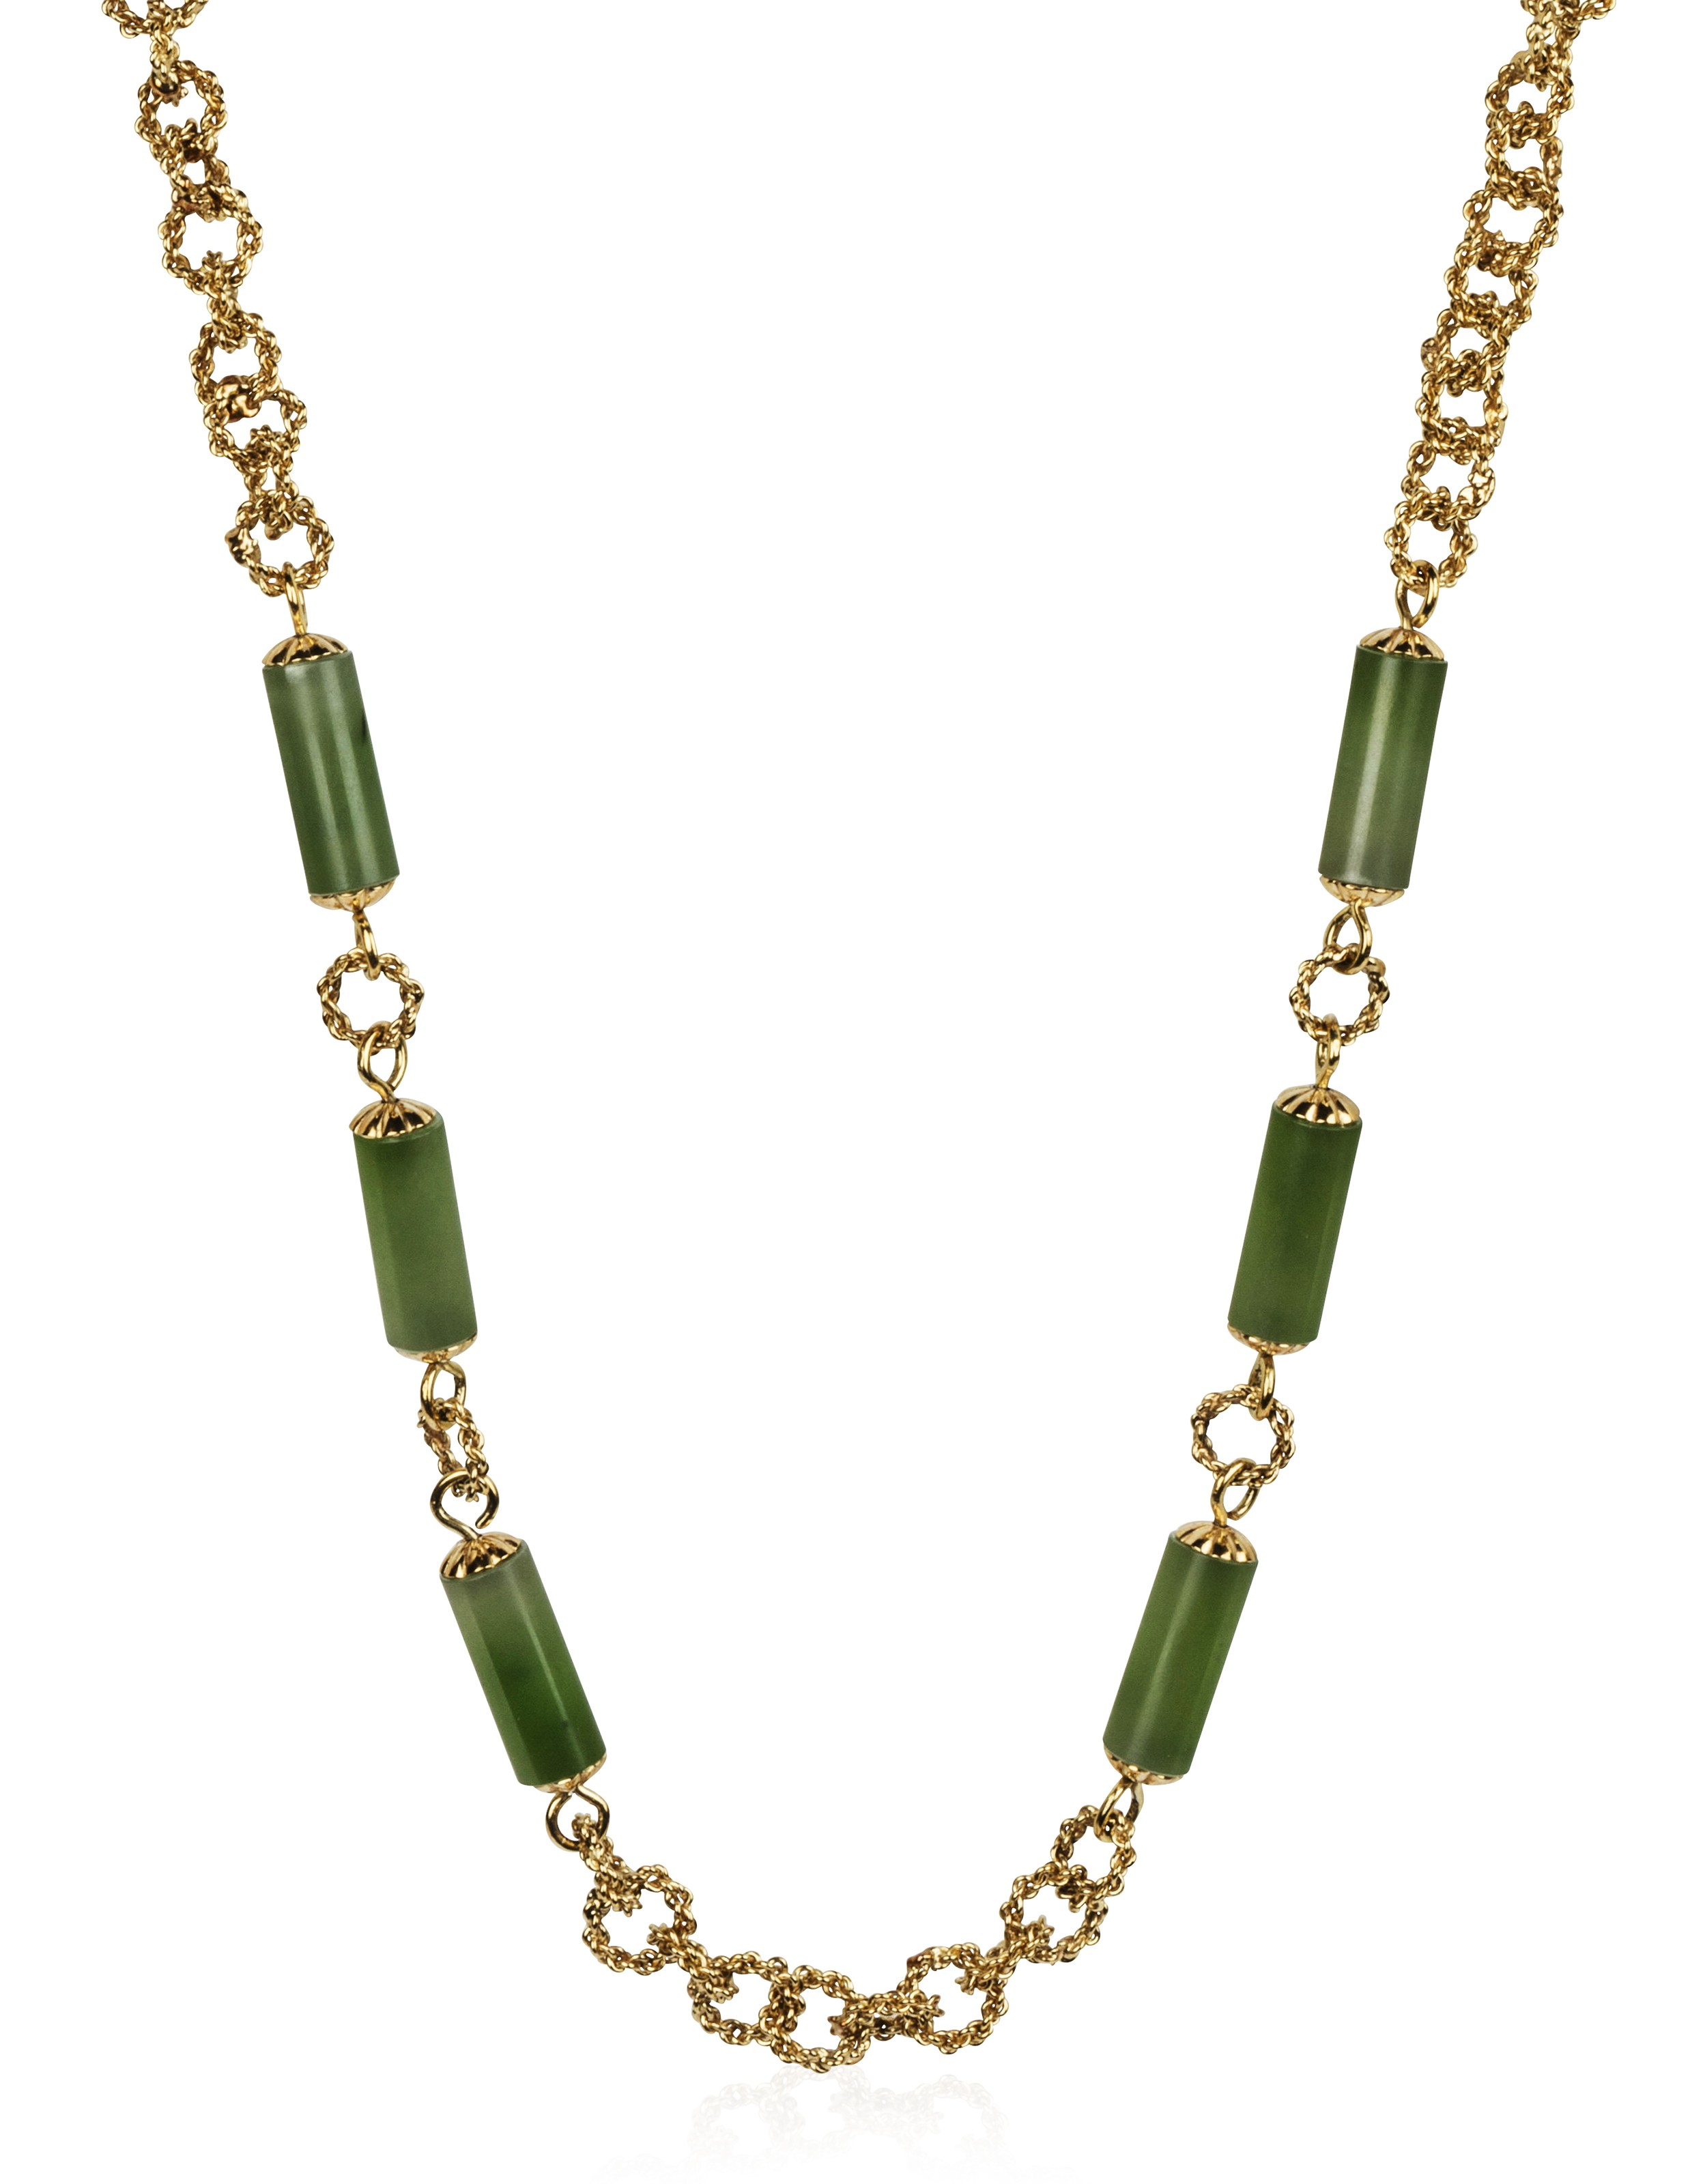 46e72216a TIFFANY & CO. JADE AND GOLD NECKLACE, | Christie's